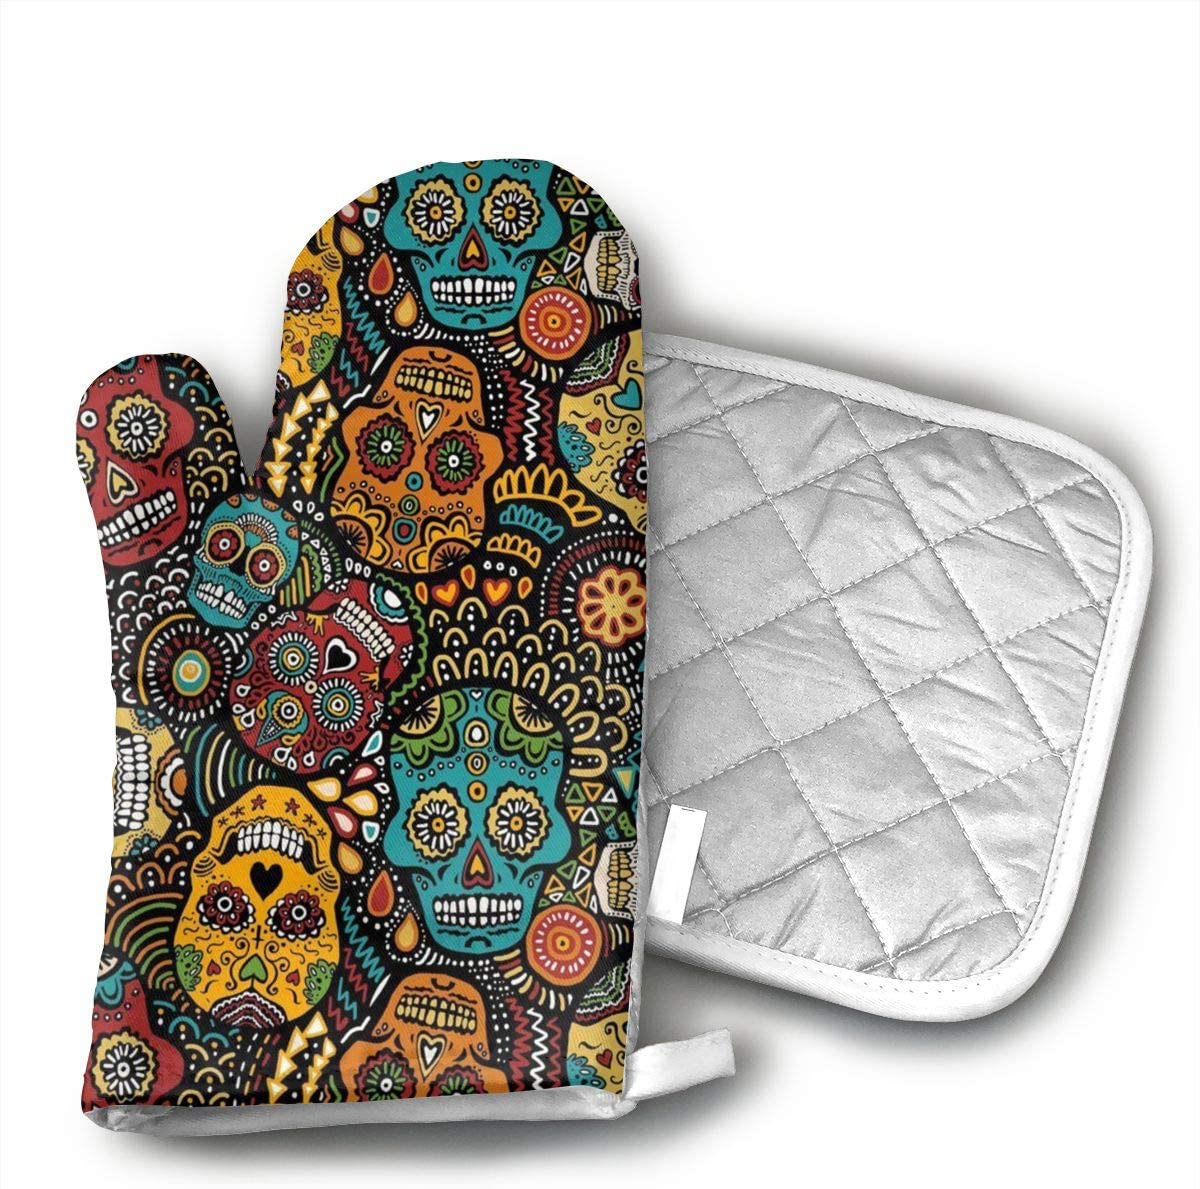 Mexican Sugar Skulls Non-Slip Silicone Oven Mitts and Potholder Set, Extra Long Kitchen Mitts, Heat Resistant to 526 Fahrenheit Degrees Kitchen Oven Gloves